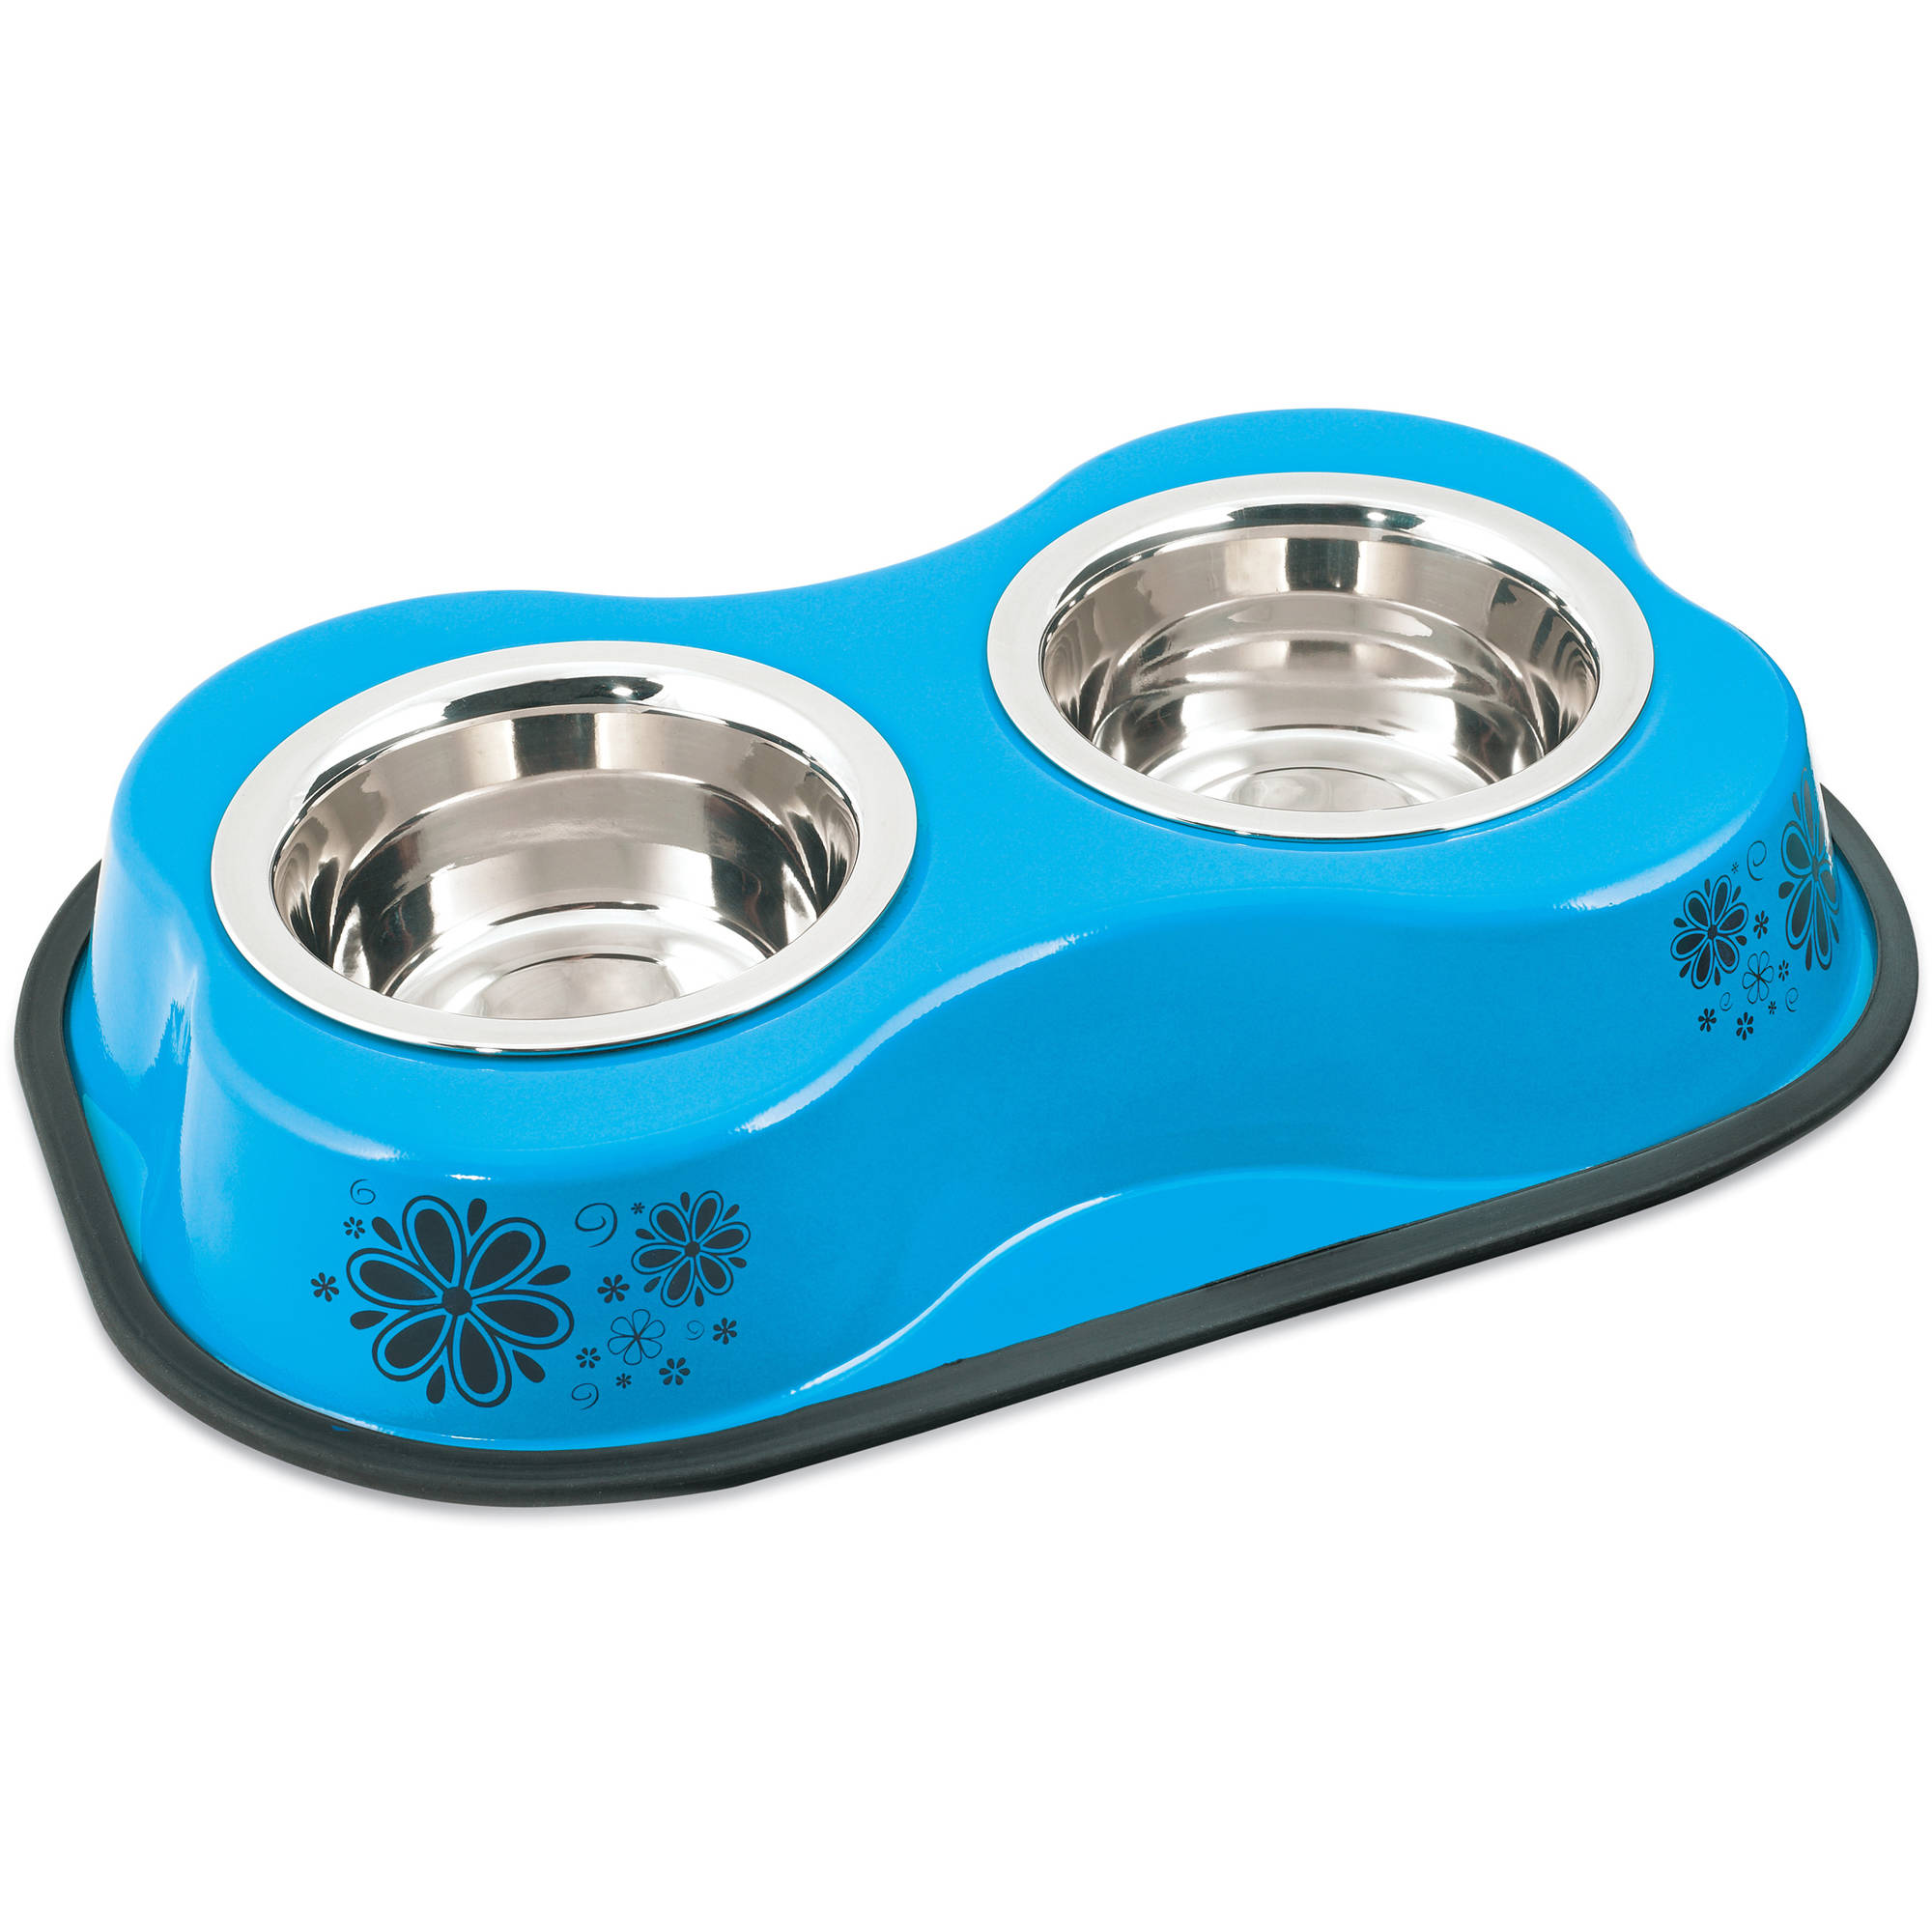 Bone Shaped Double Diner W/2 1pt Stainless Steel Bowls, Flower Pattern Blue